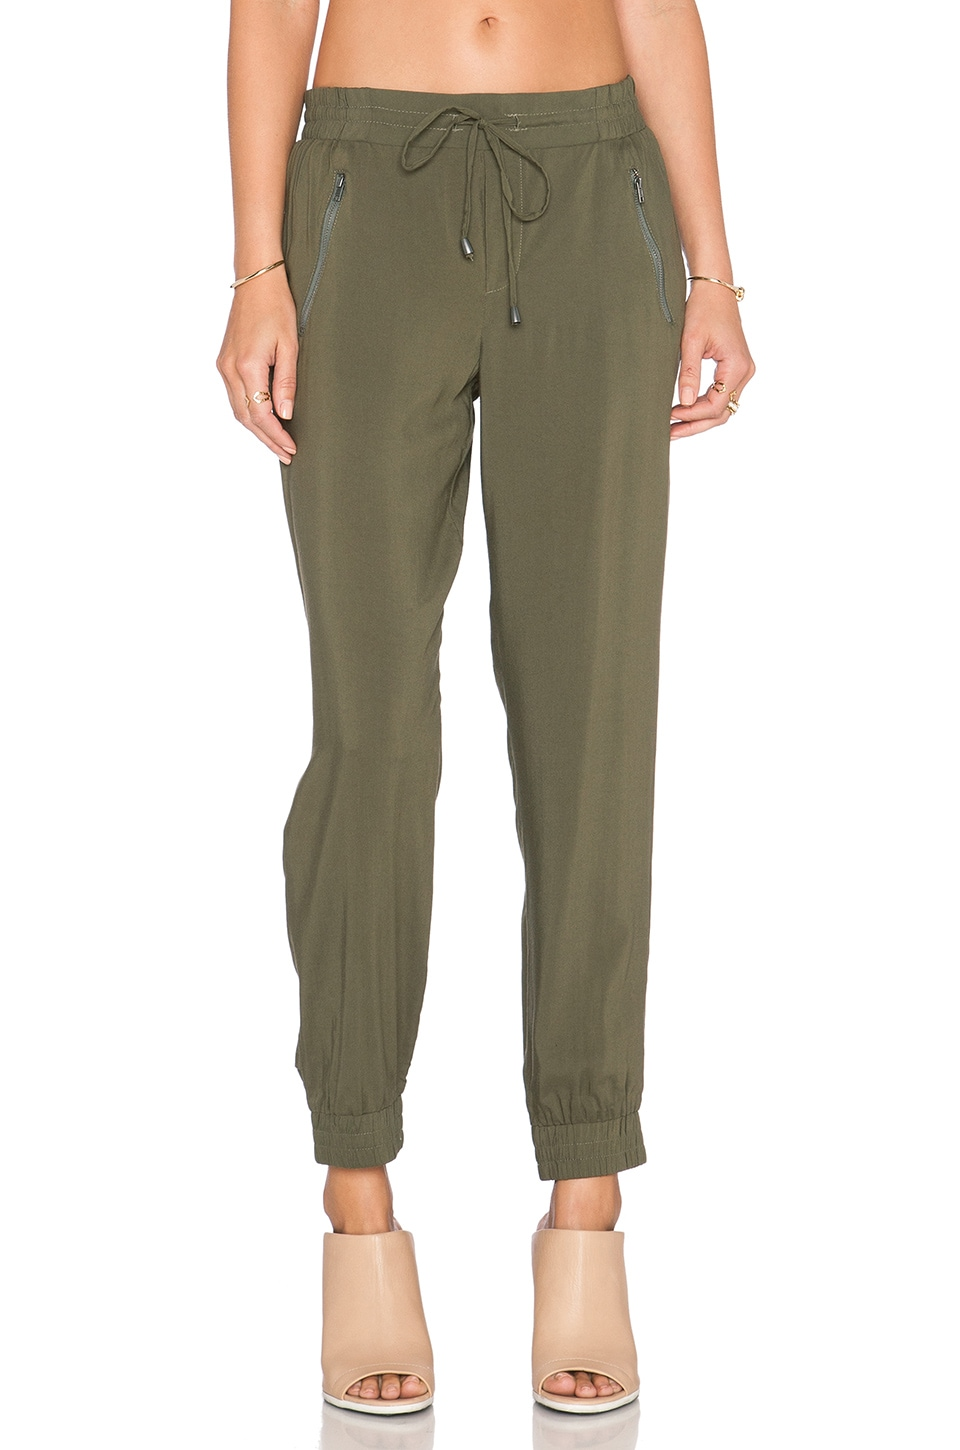 Splendid Rayon Voile Jogger Pant in Dusty Olive